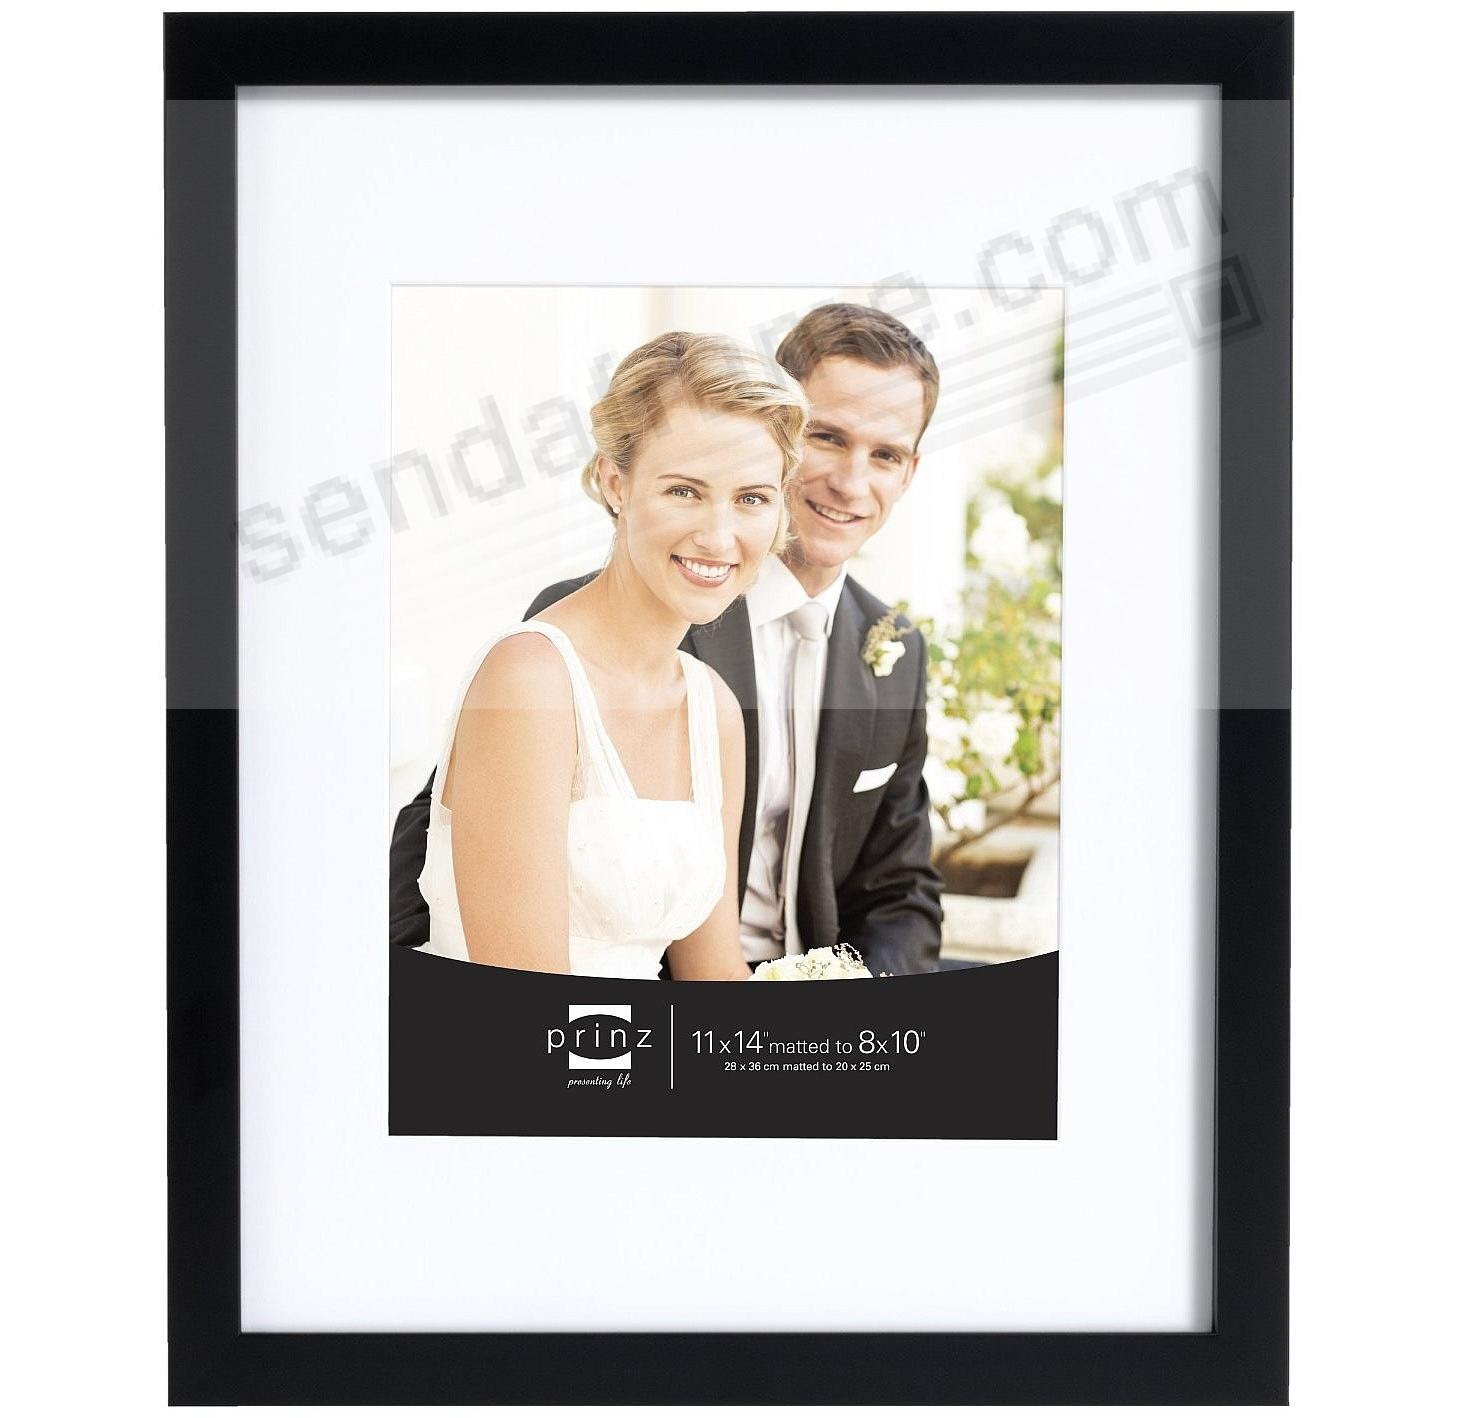 Amazoncom Golden State Art 11x14 Photo Frame With White Mat For